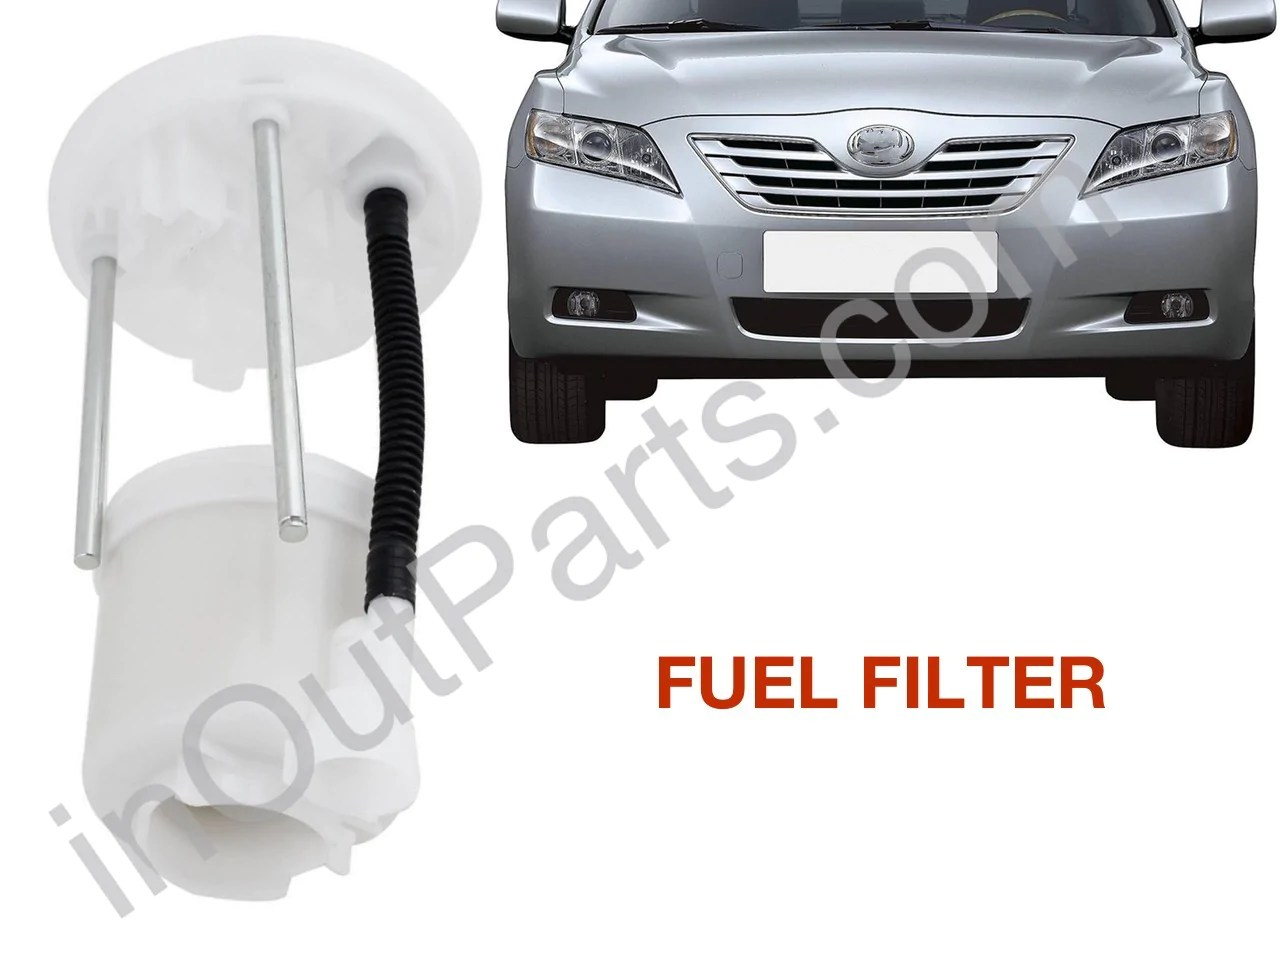 medium resolution of fuel filter toyota camry 2azfe 2006 2007 2008 2009 2010 2011 2012 2013 2014 2015 2016